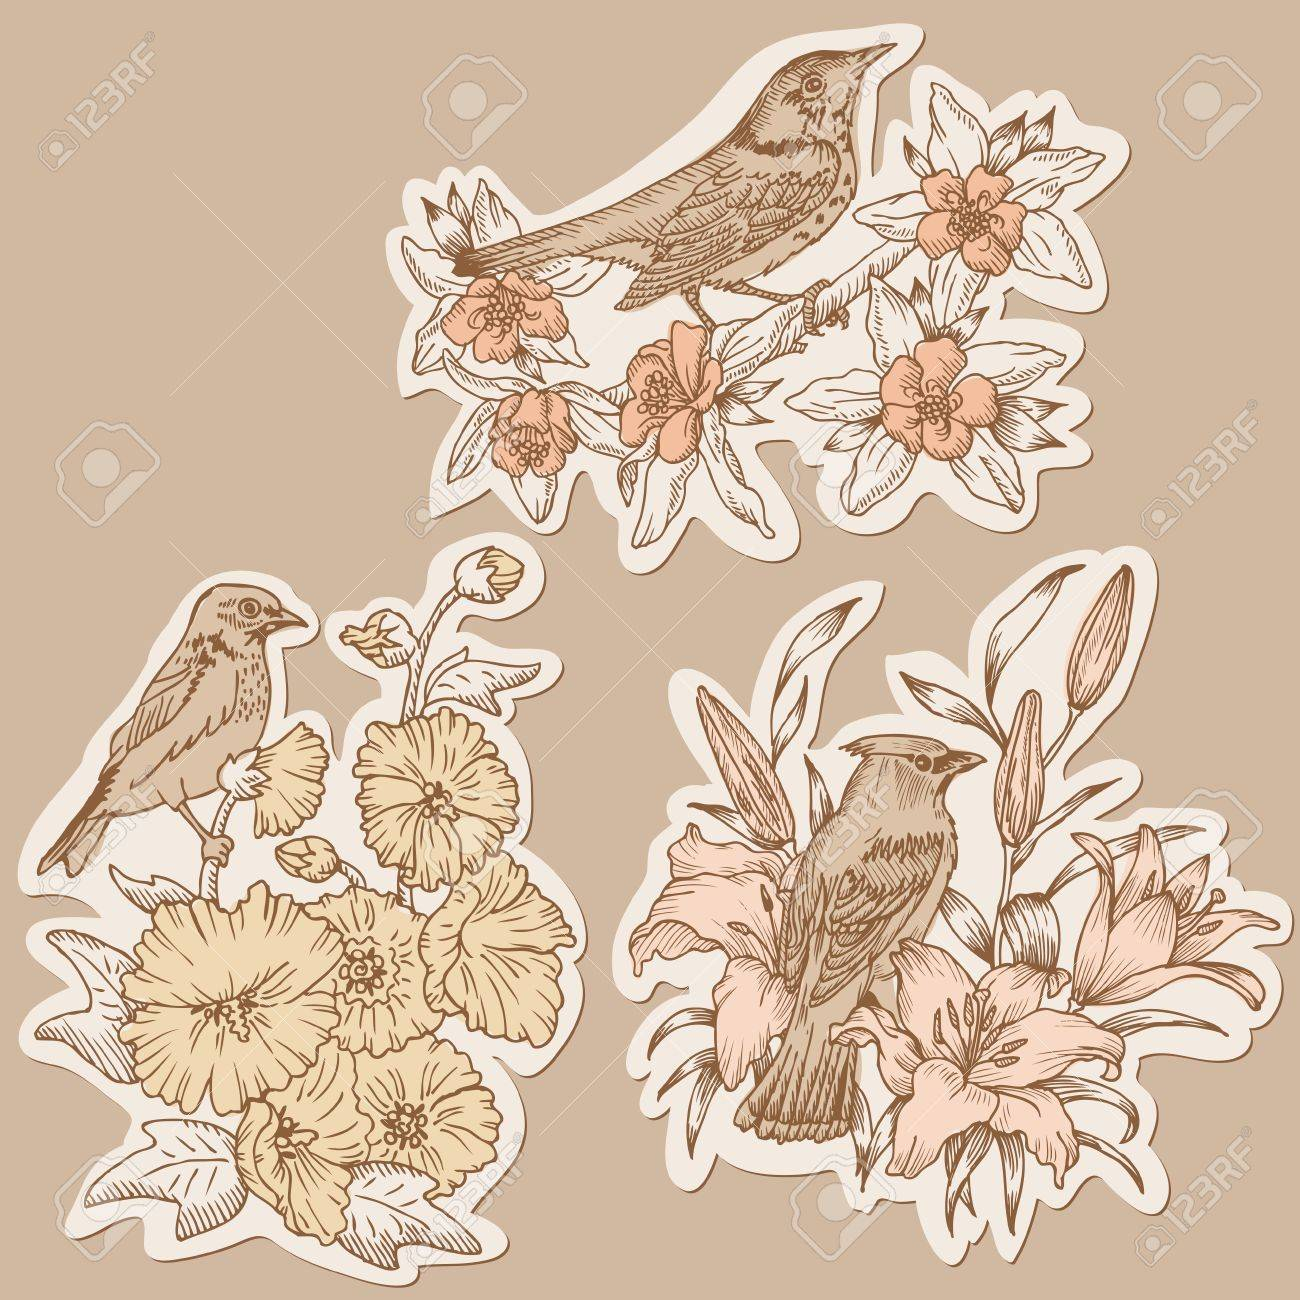 Set of Vintage Birds and Flowers on tags - hand drawn in vector Stock Vector - 12851854